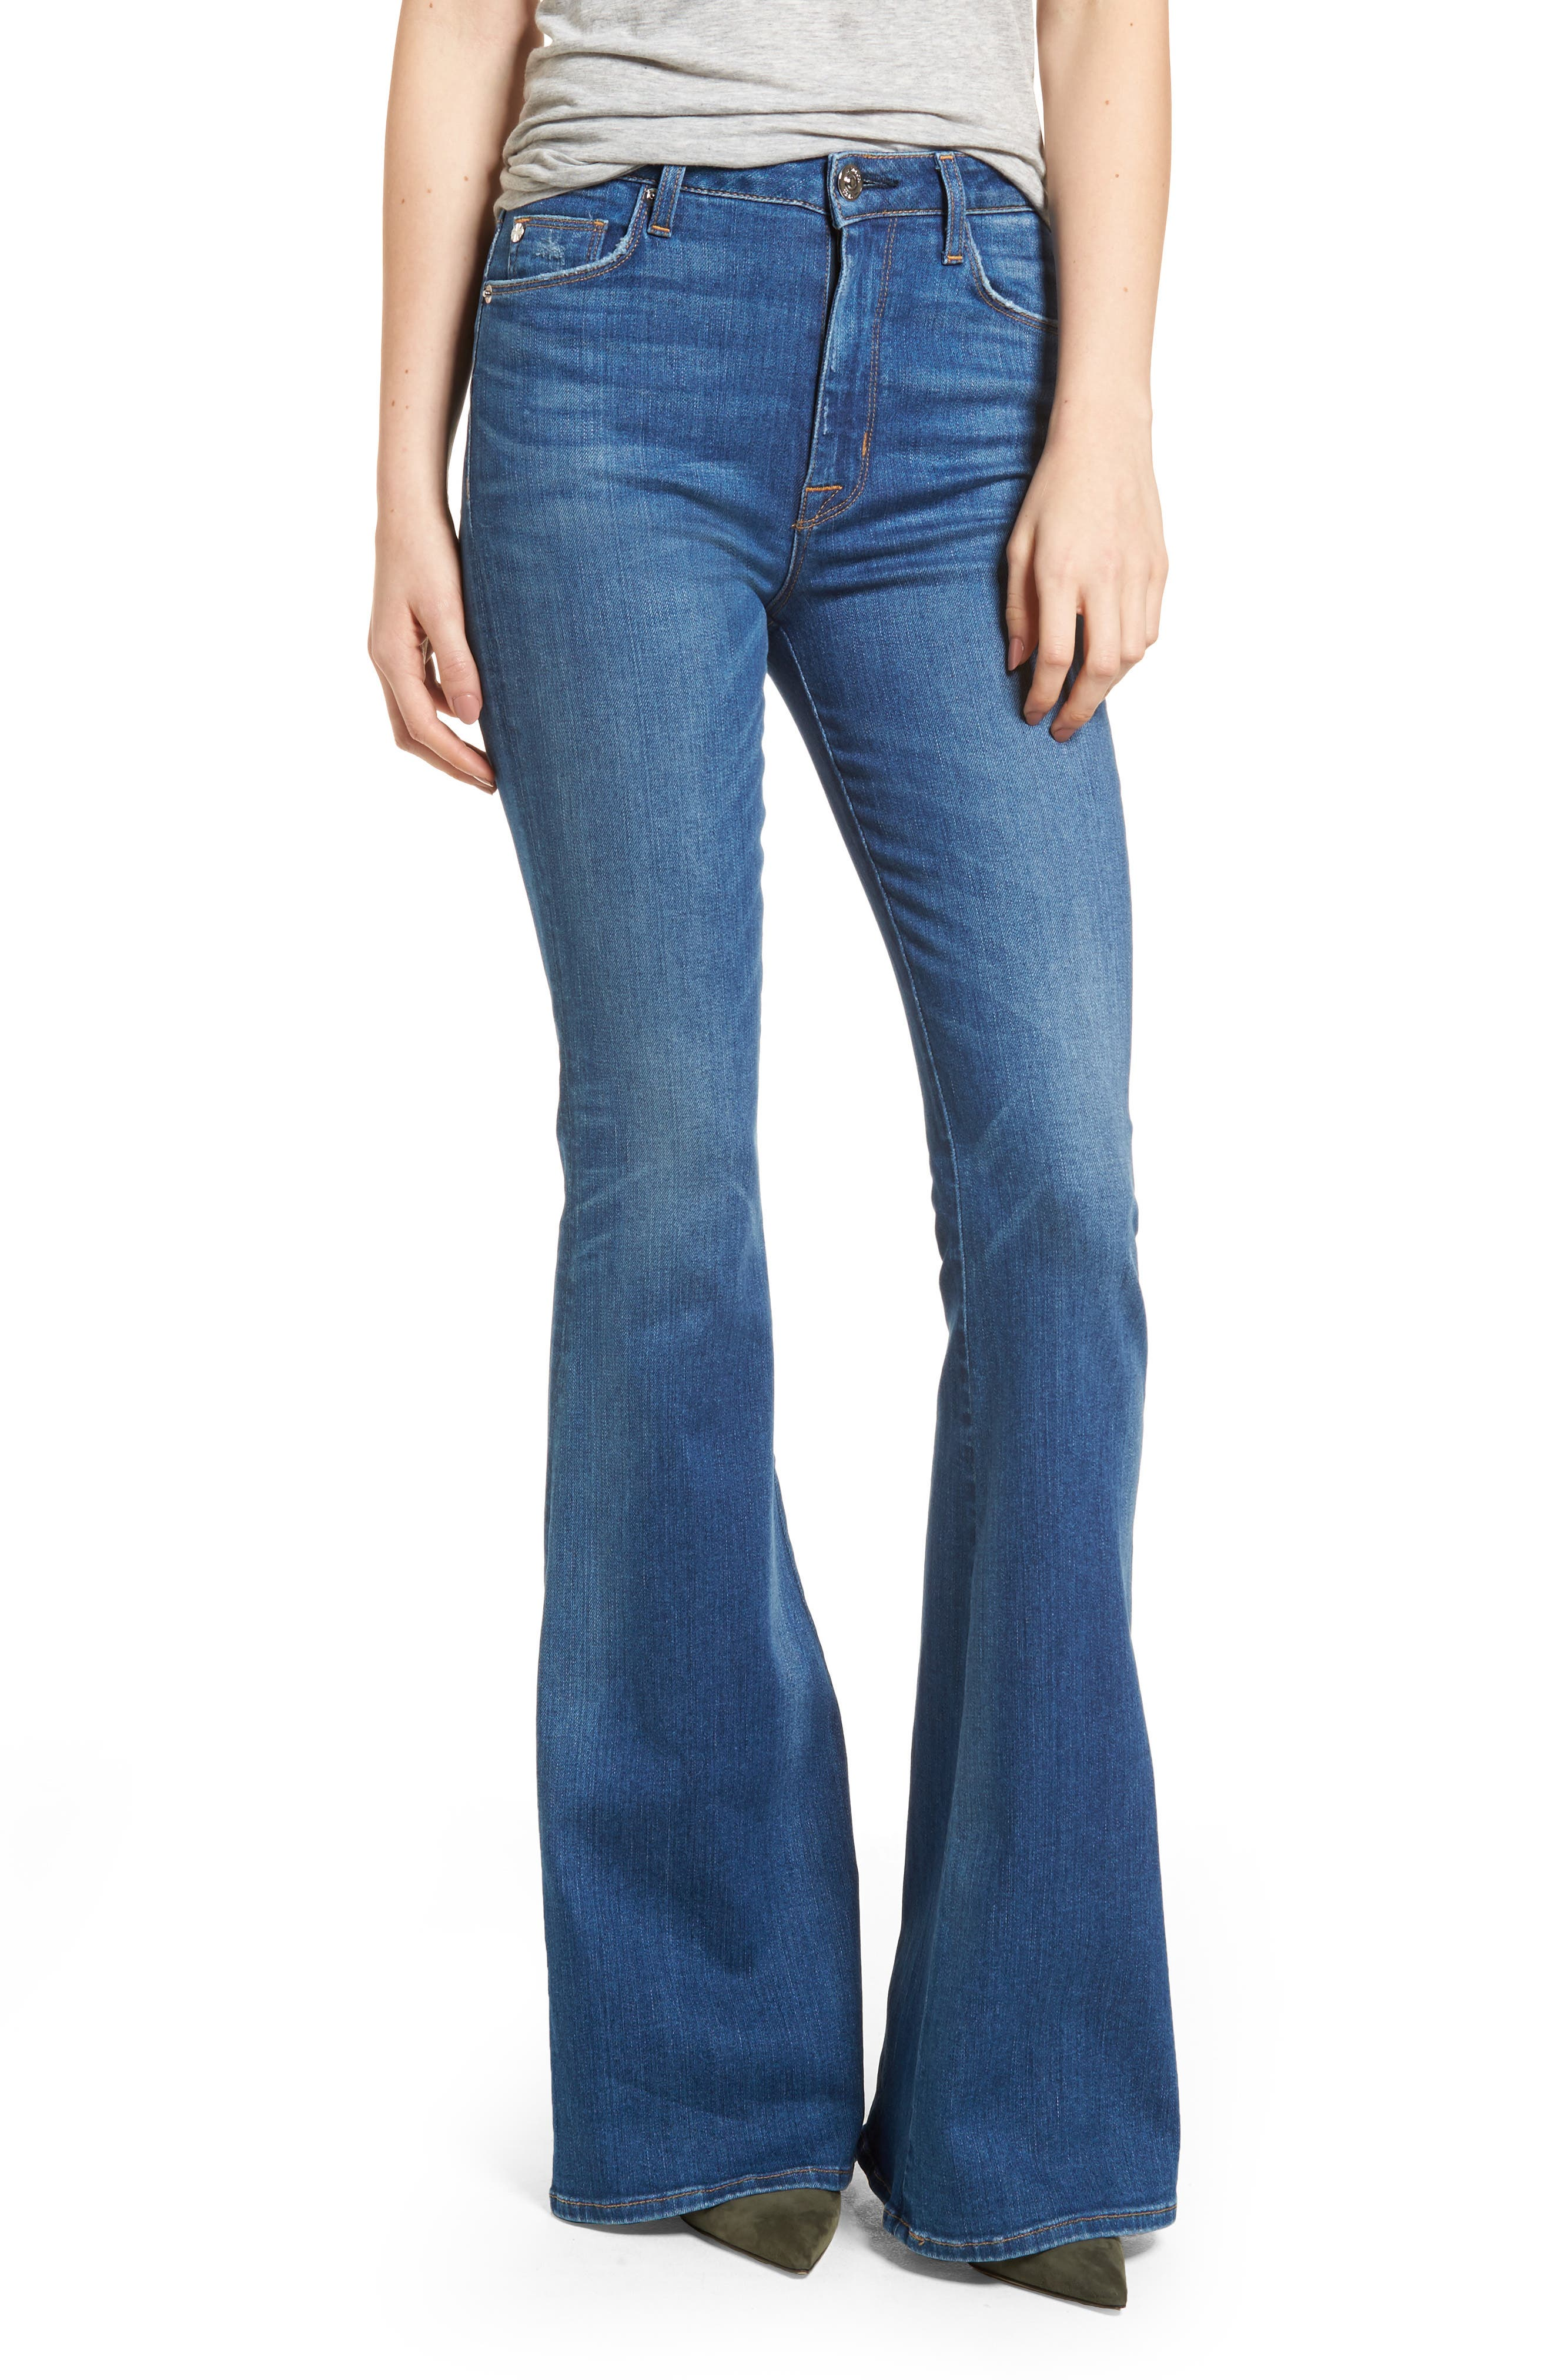 Holly High Waist Flare Jeans,                         Main,                         color, 401